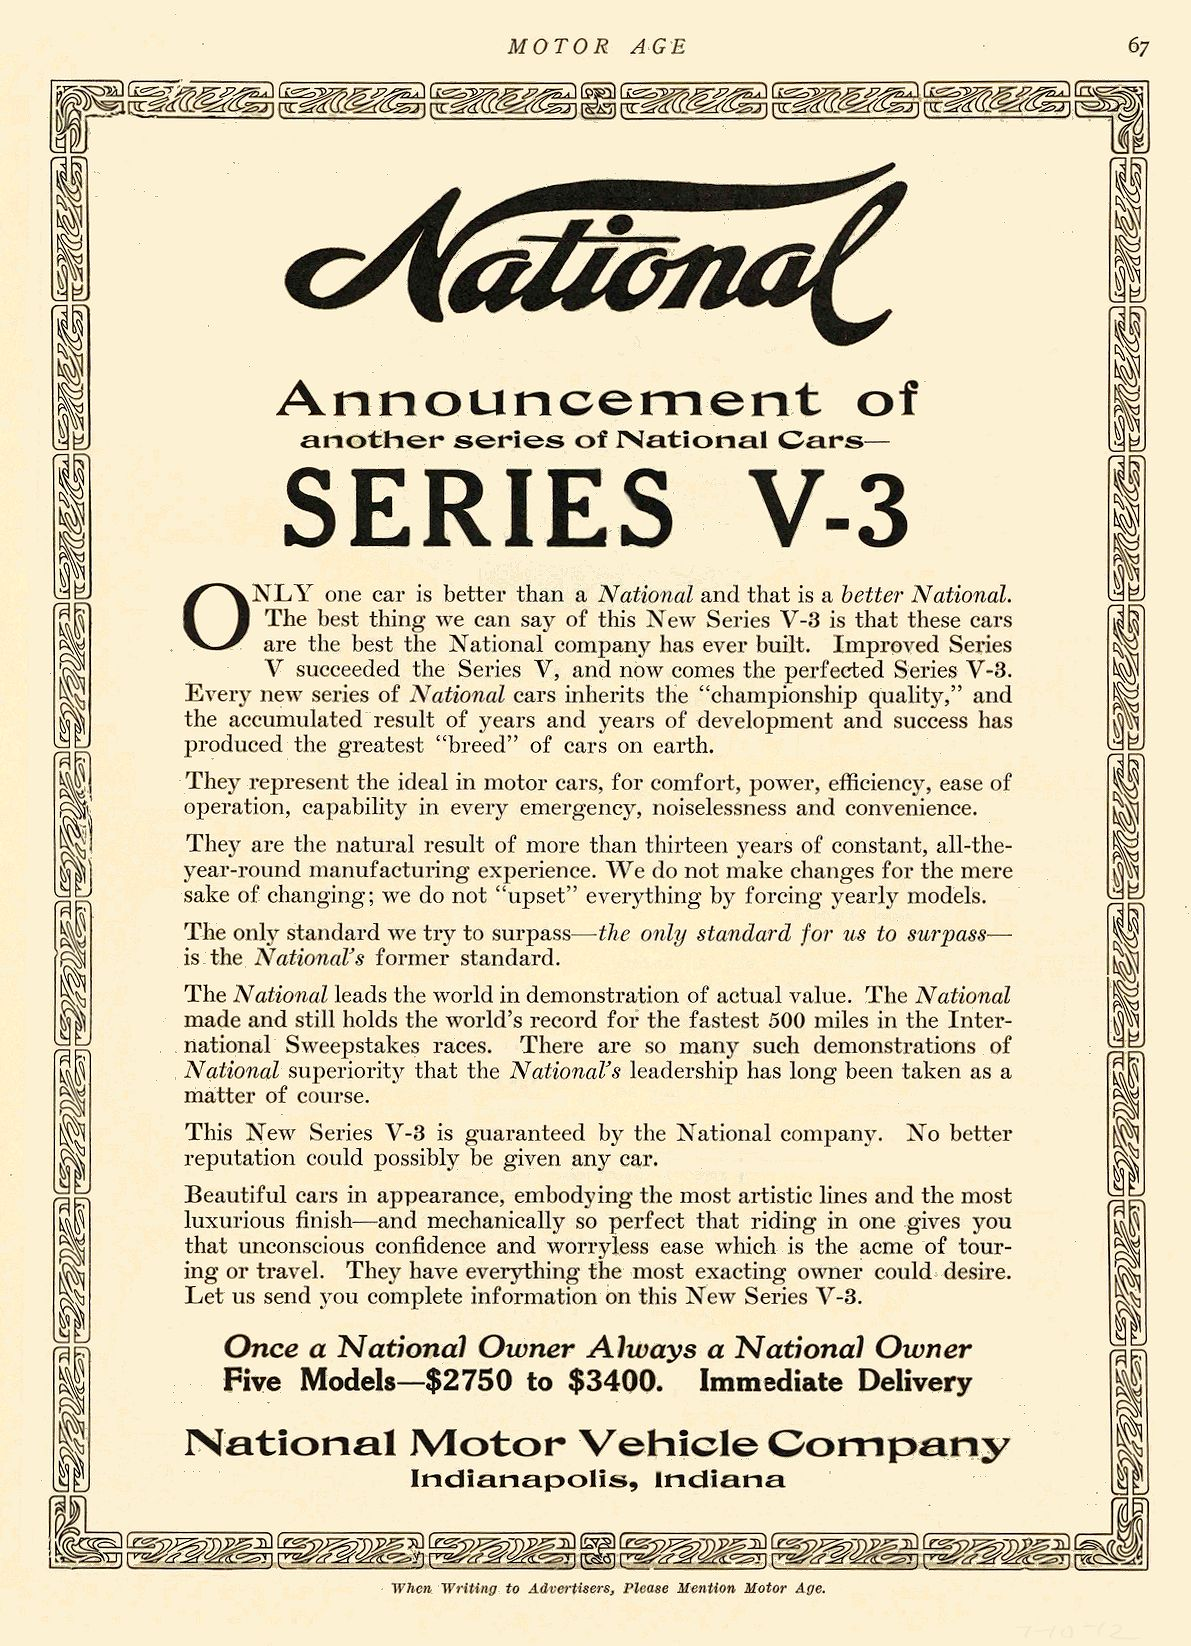 1912 7 10 NATIONAL Announcement of SERIES V-3 National Motor Vehicle Company Indianapolis, IND MOTOR AGE July 10, 1912 8.5″x11.75″ page 67